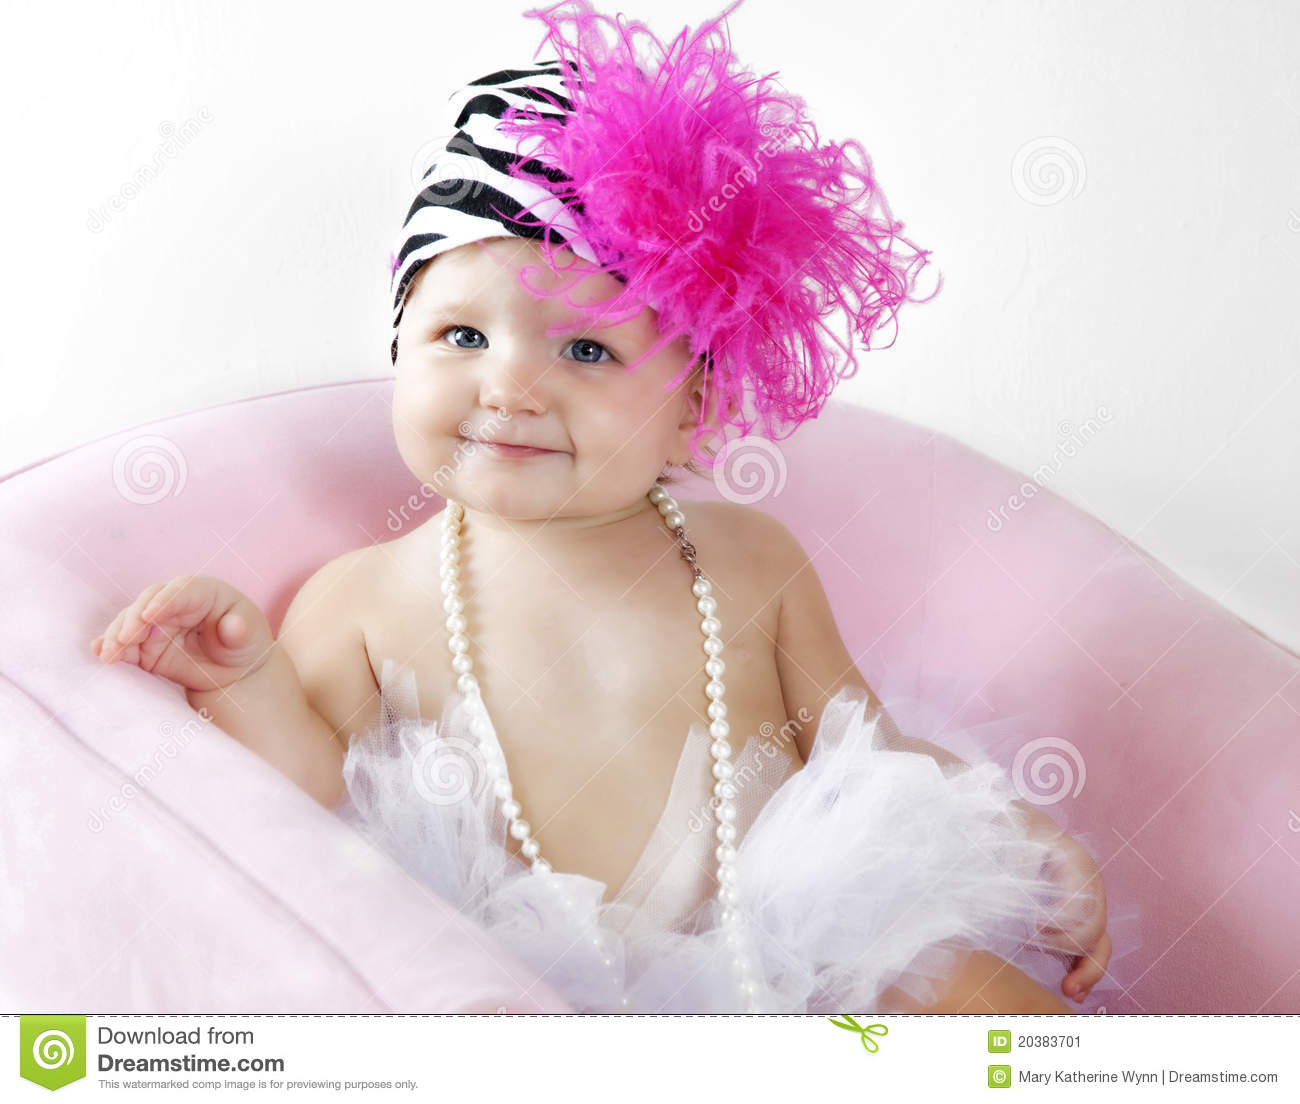 cute baby girl in tutu and hat stock image - image of happy, pretty